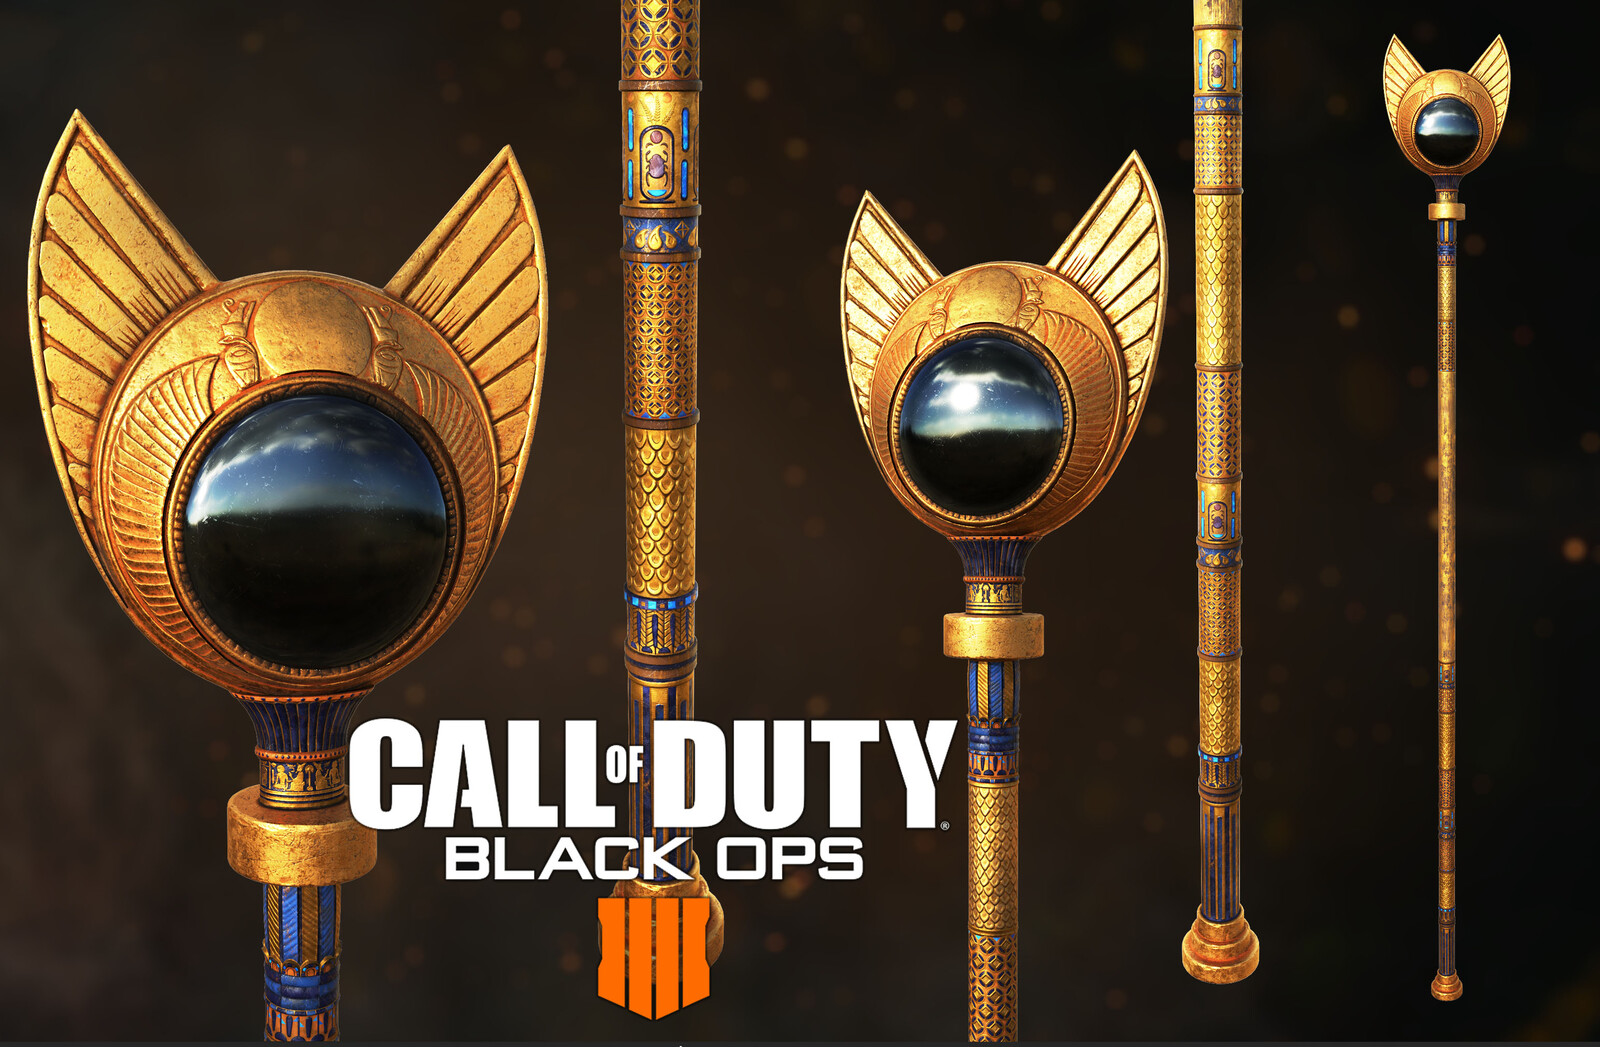 Call Of Duty Black Ops 4 staff